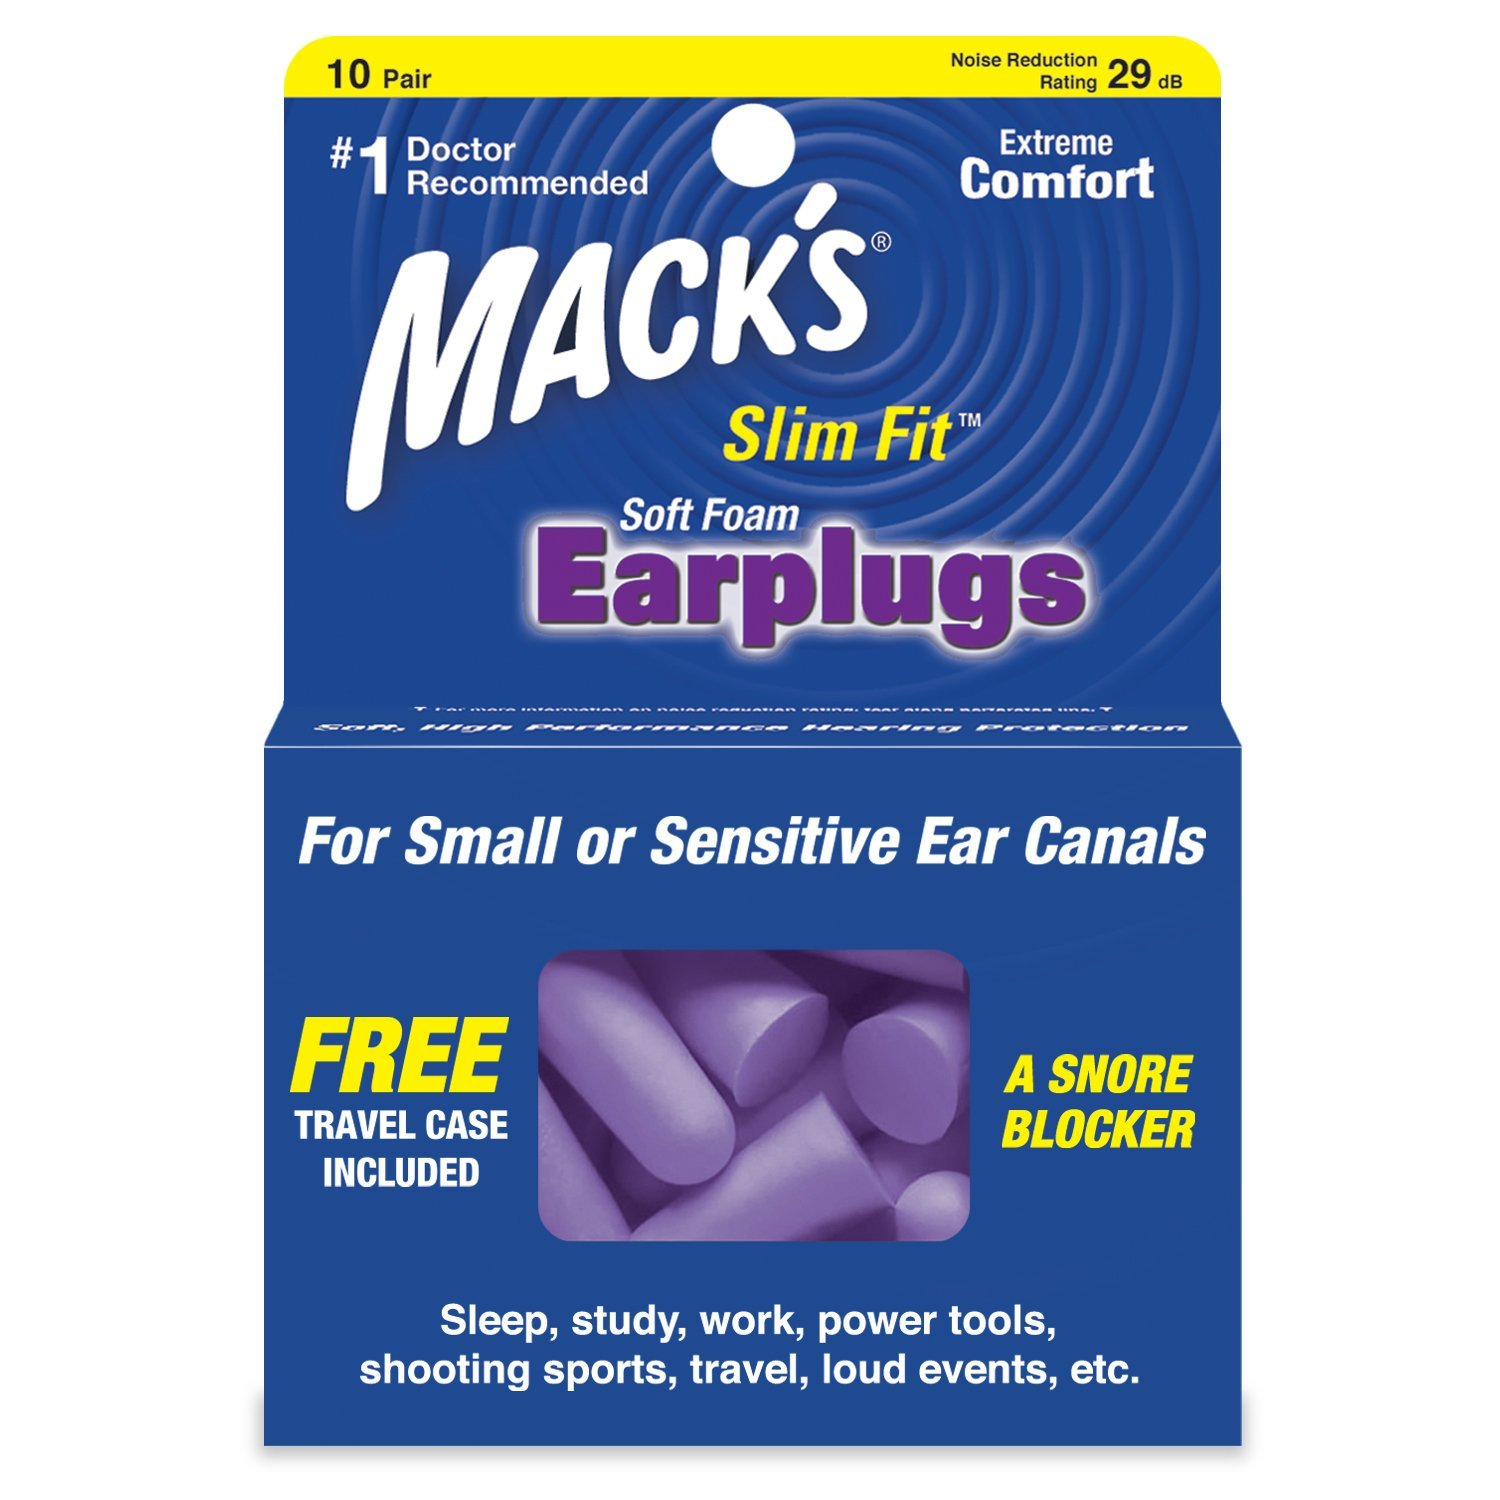 Mack's Slim Fit Soft Foam Earplugs, 10 Pair - Small Ear Plugs for Sleeping, Snoring, Traveling, Concerts, Shooting Sports and Power Tools, These earplugs are.., By Macks